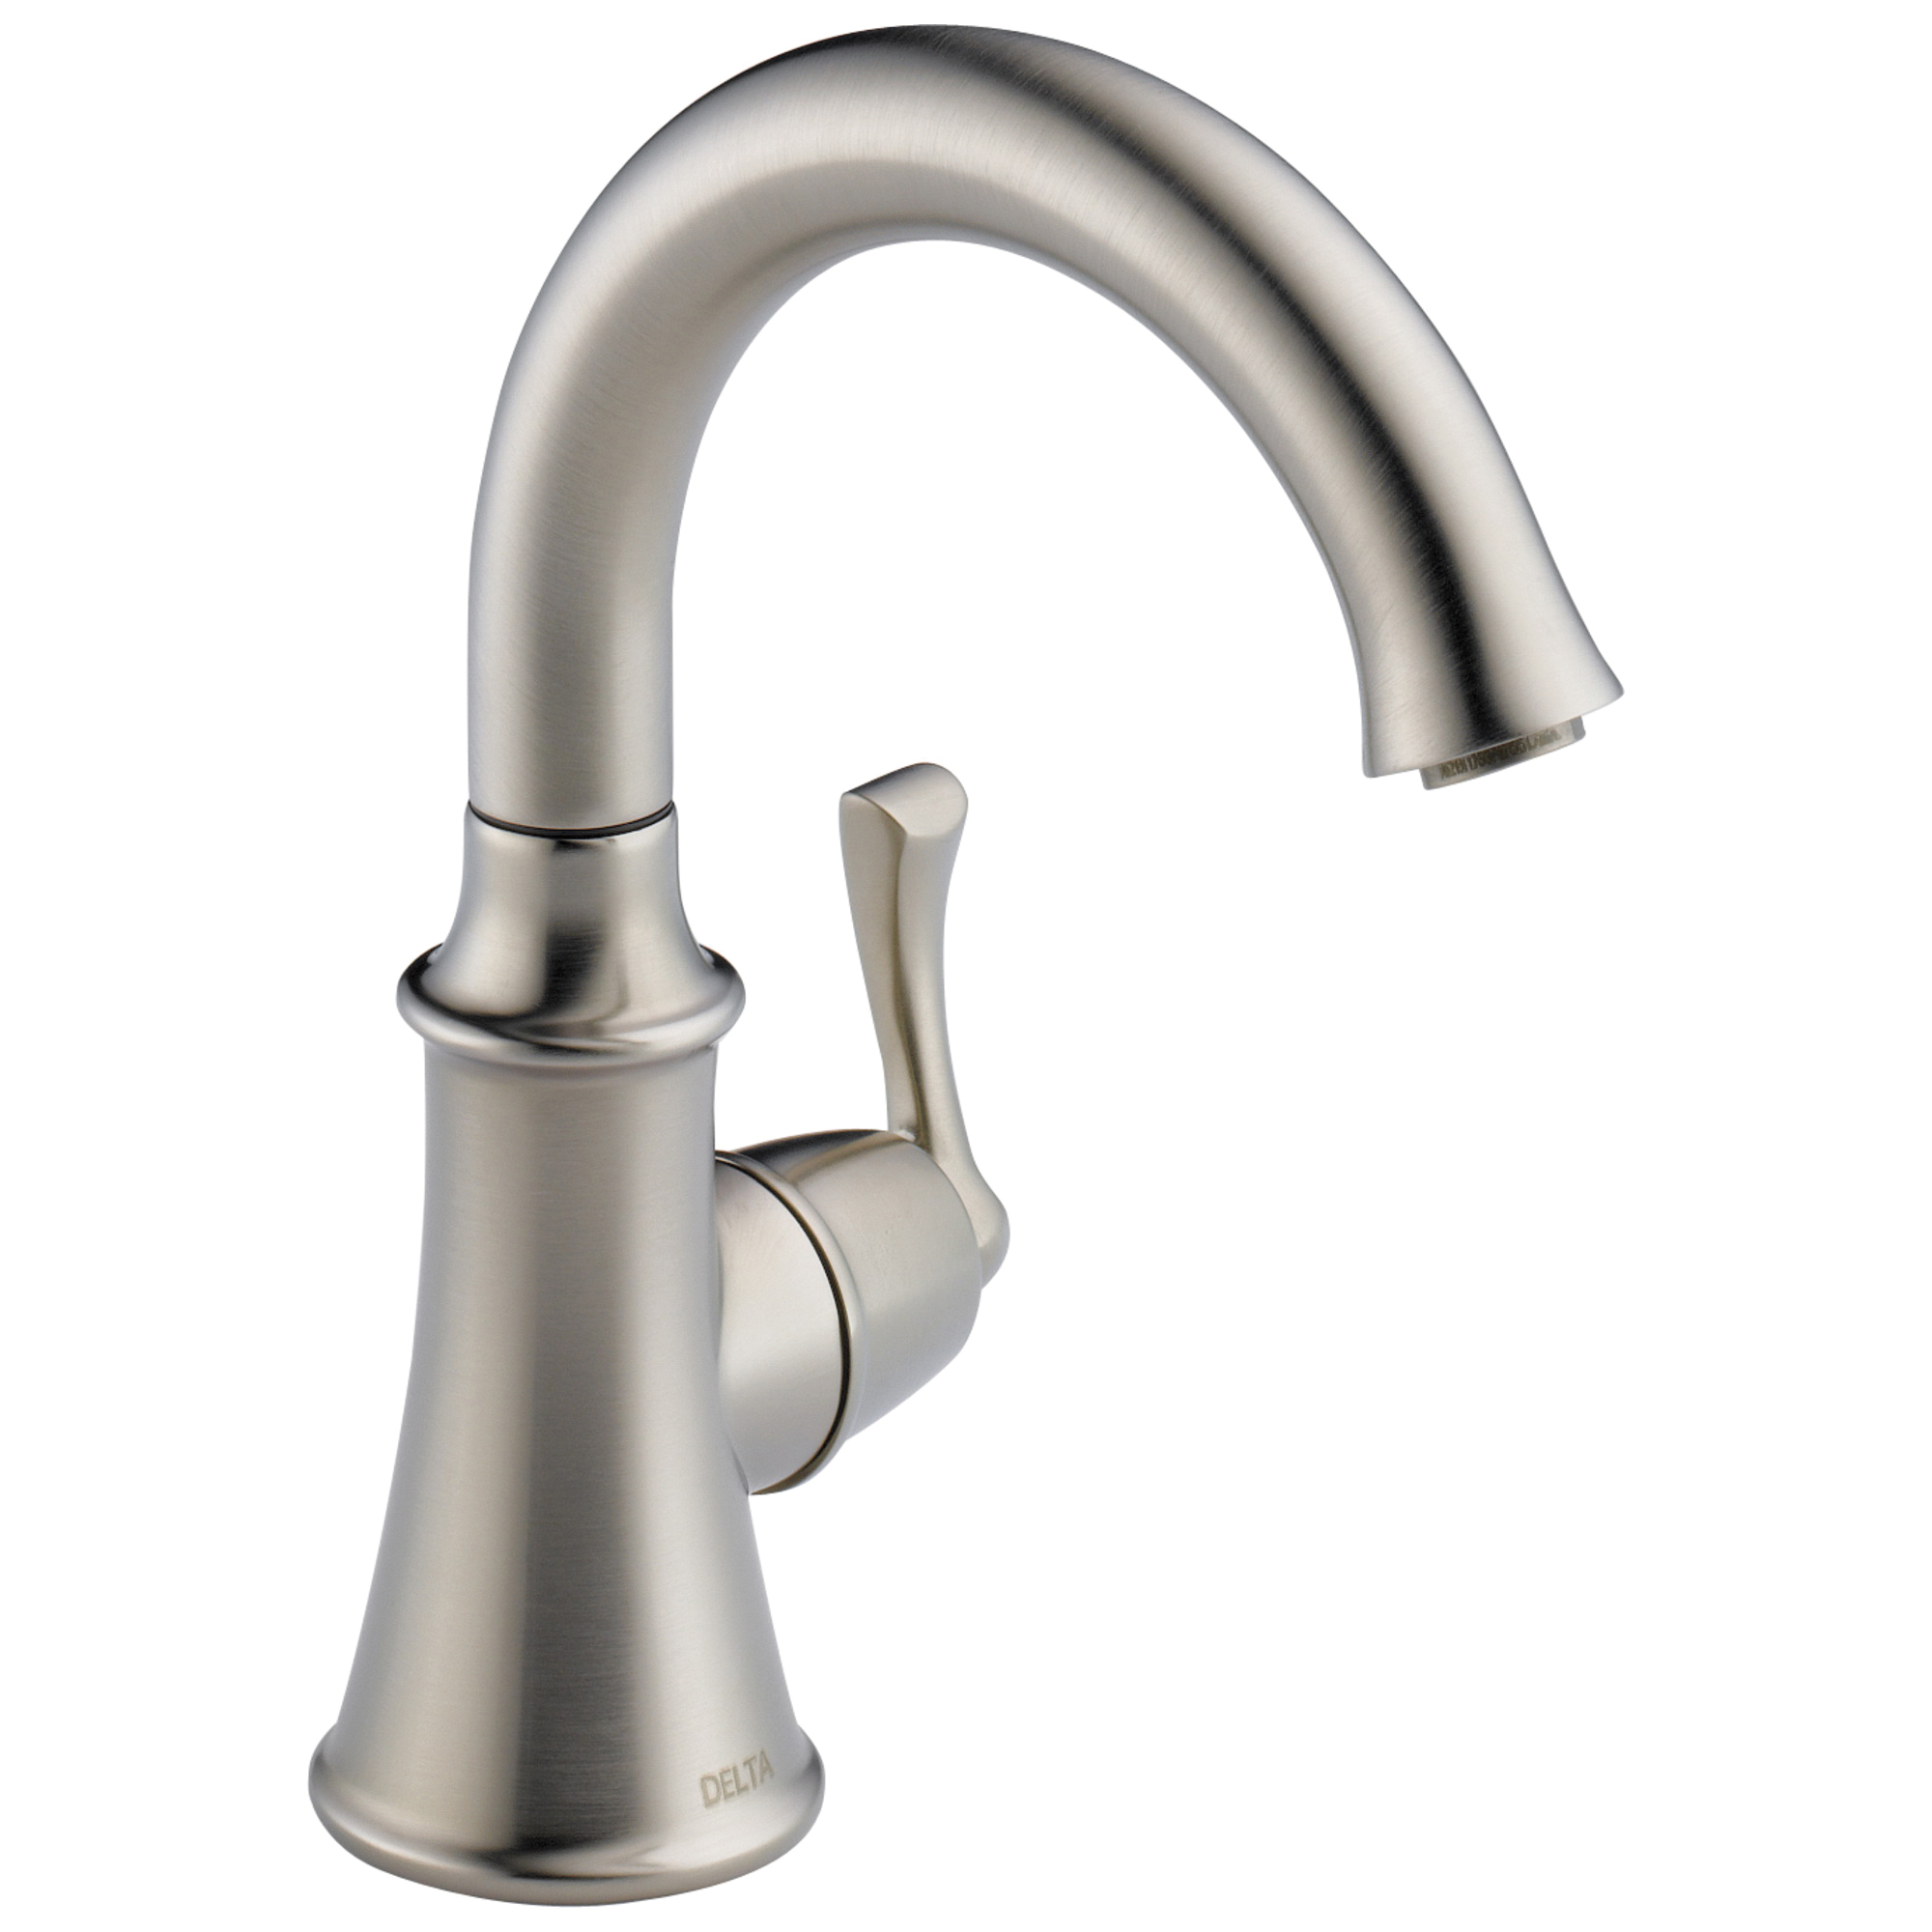 DELTA® 1914-SS-DST Traditional Beverage Faucet, 1.5 gpm Flow Rate, Stainless Steel, 1 Handles, Domestic